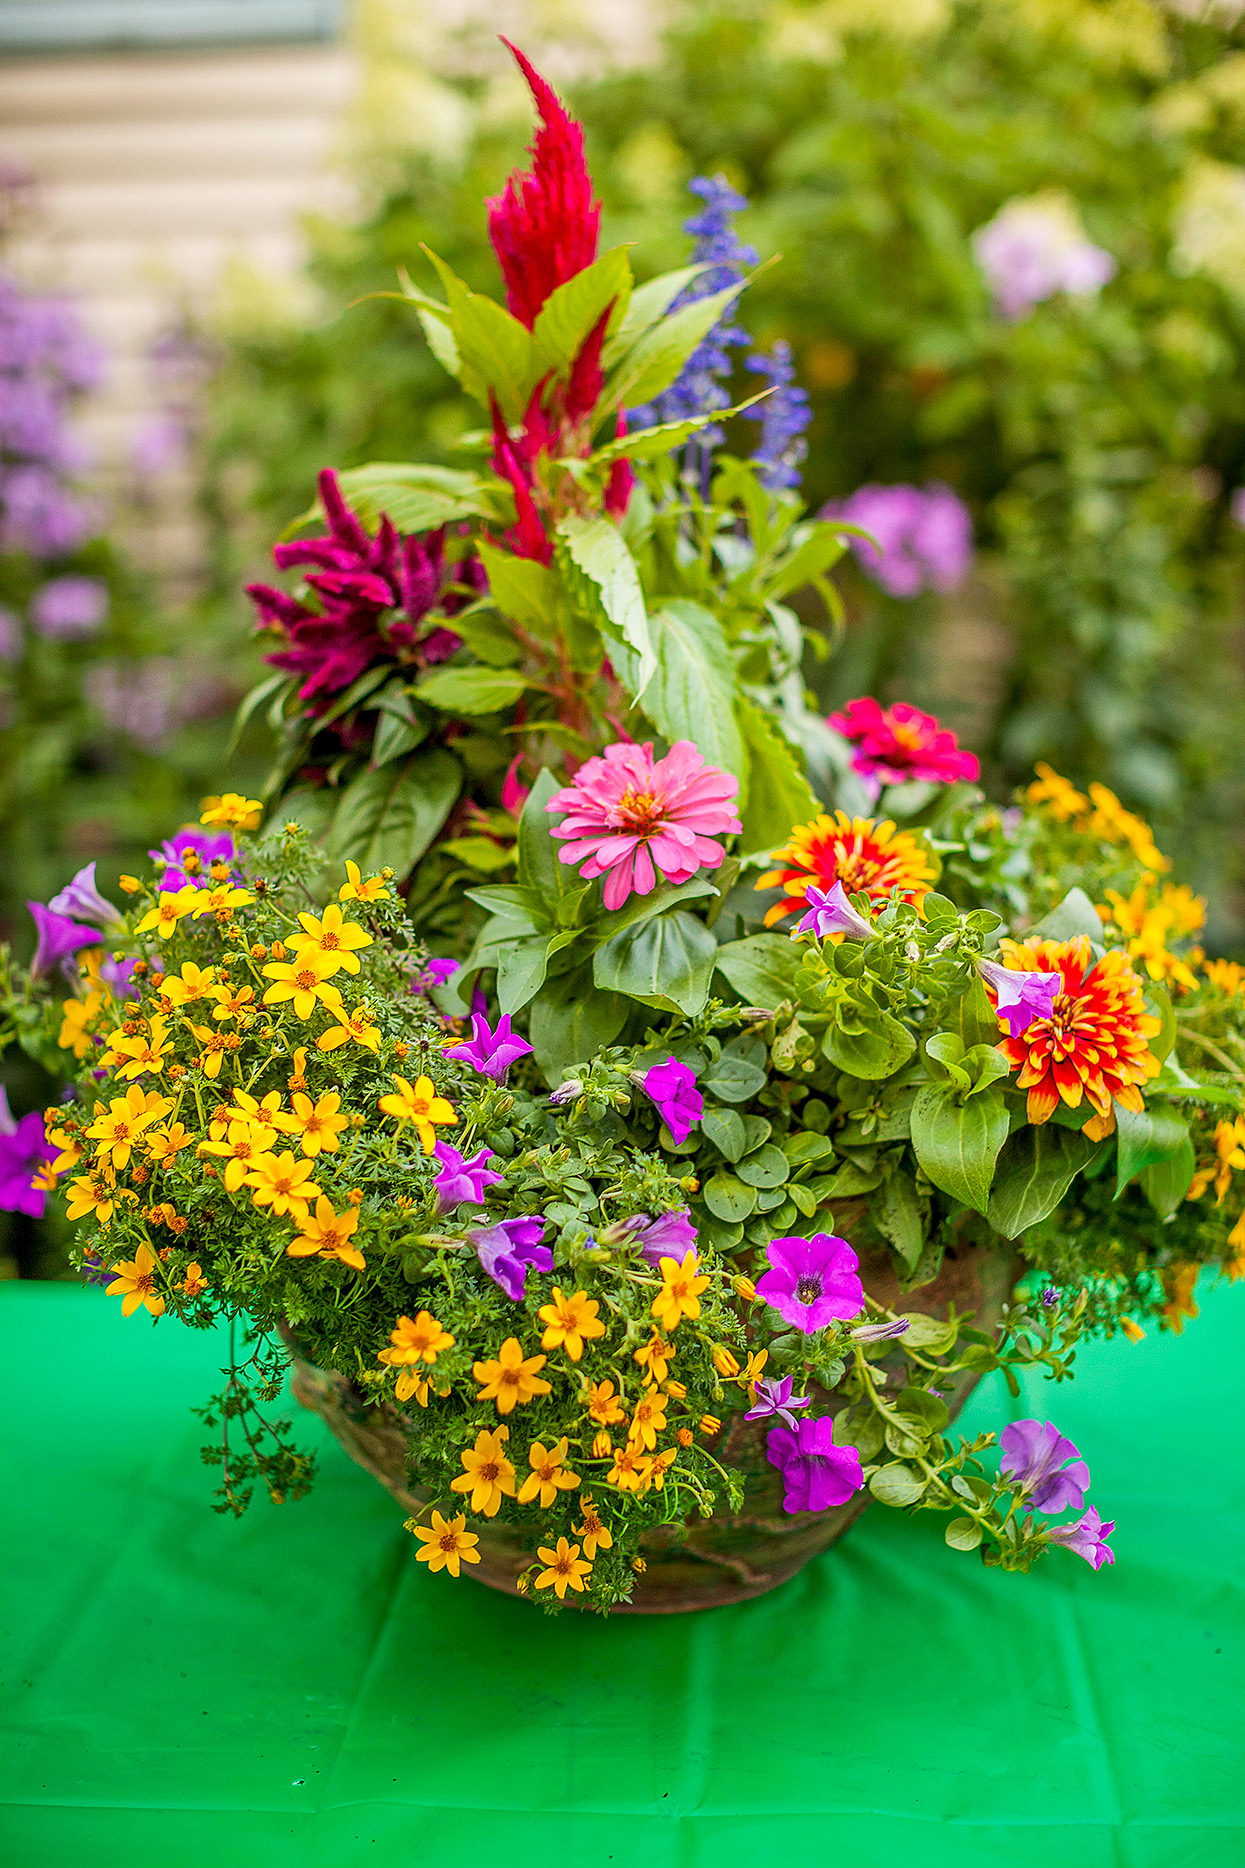 marigolds and zinnias in container